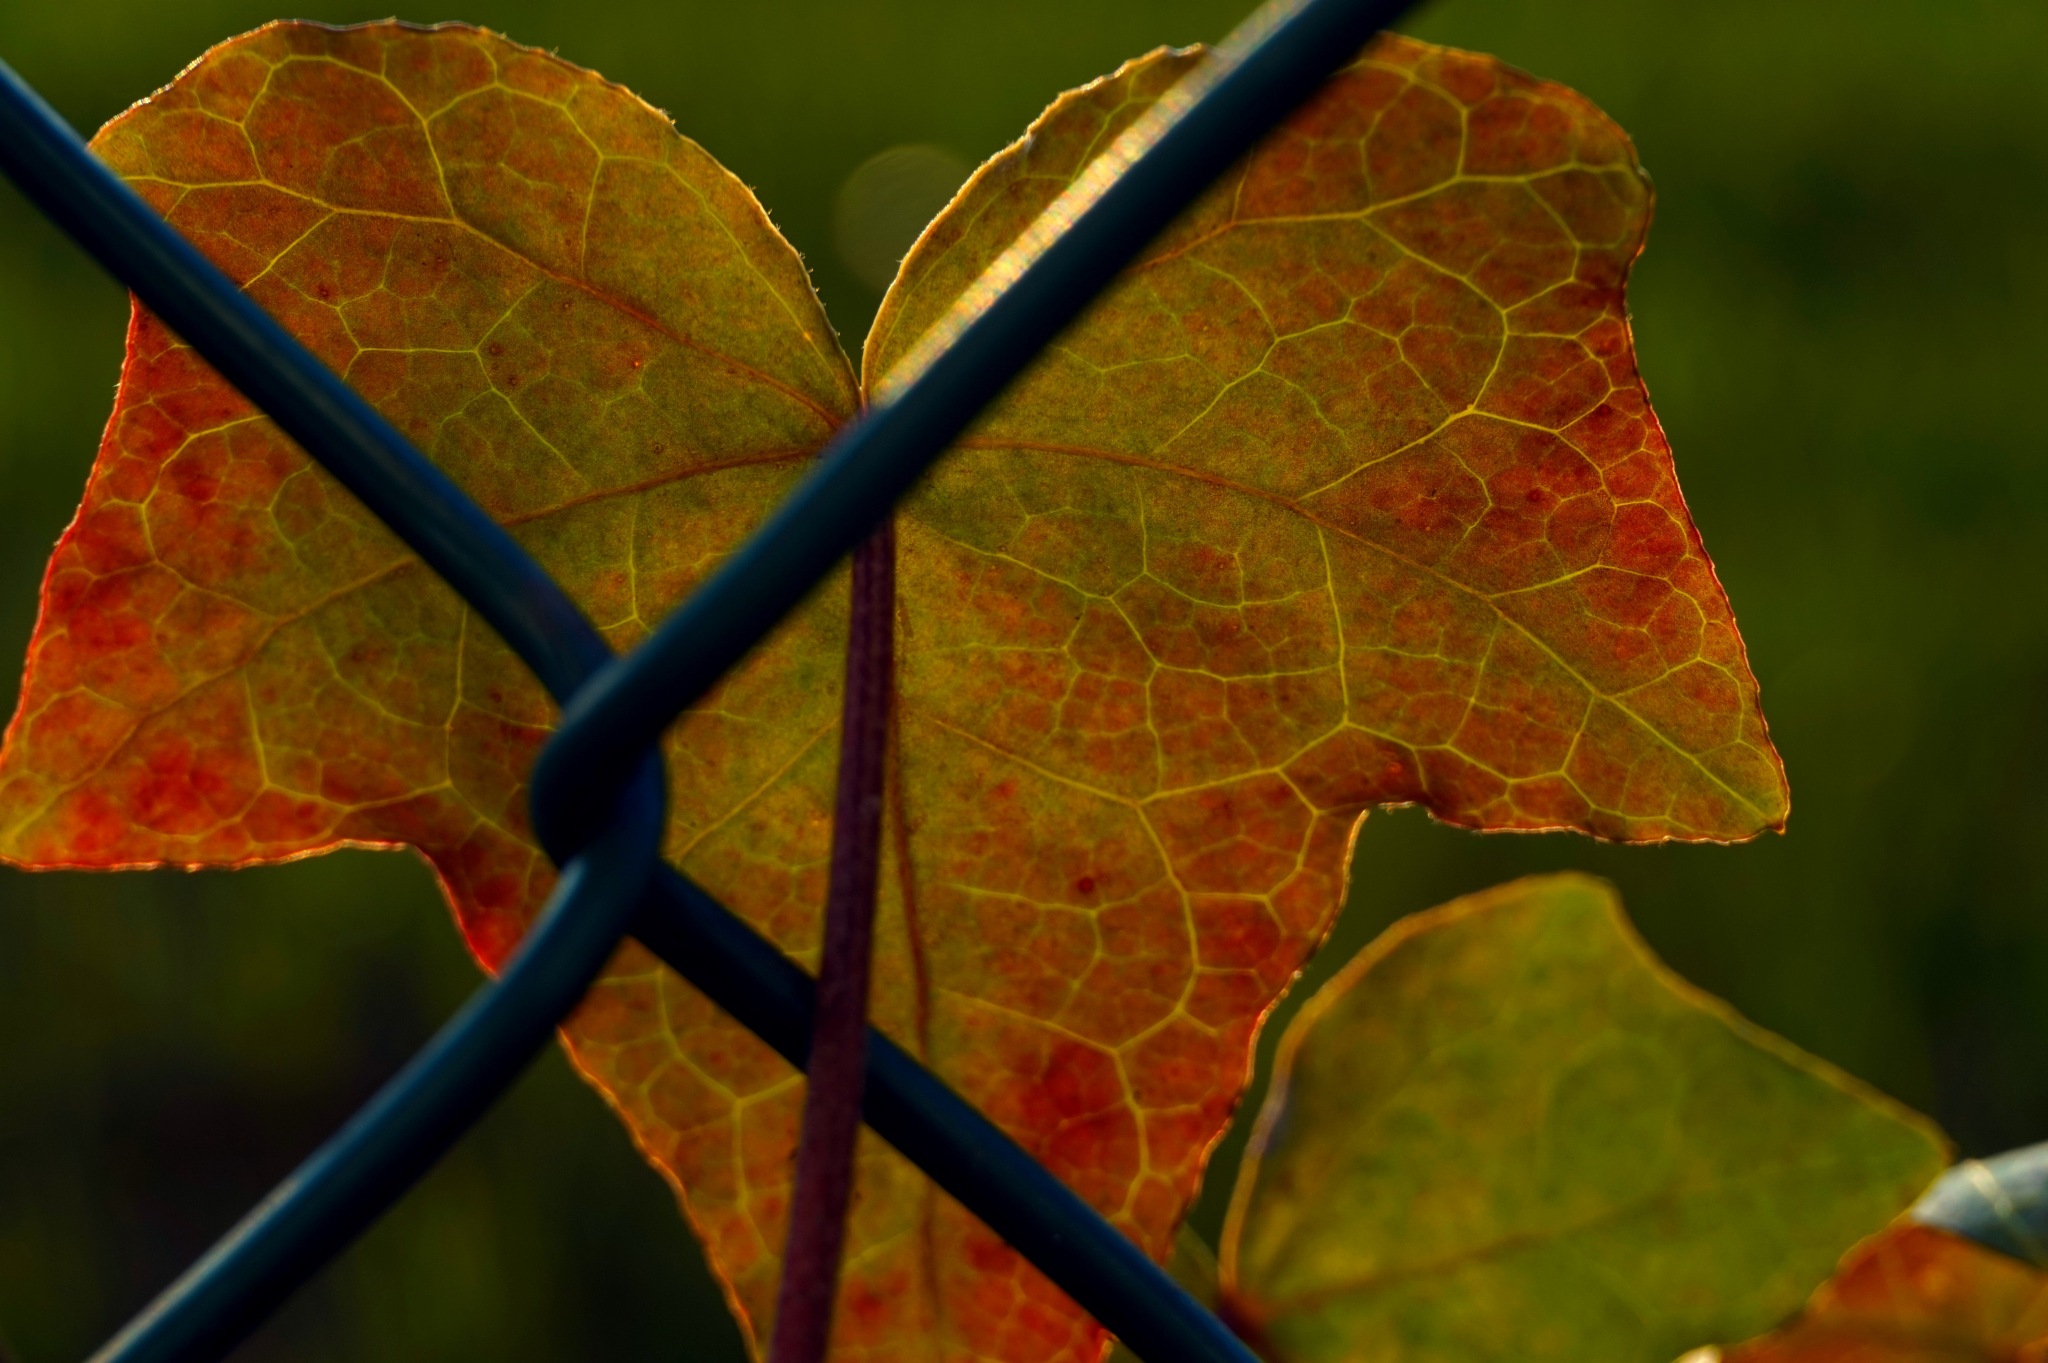 Ivy leaf by Cinquantotto